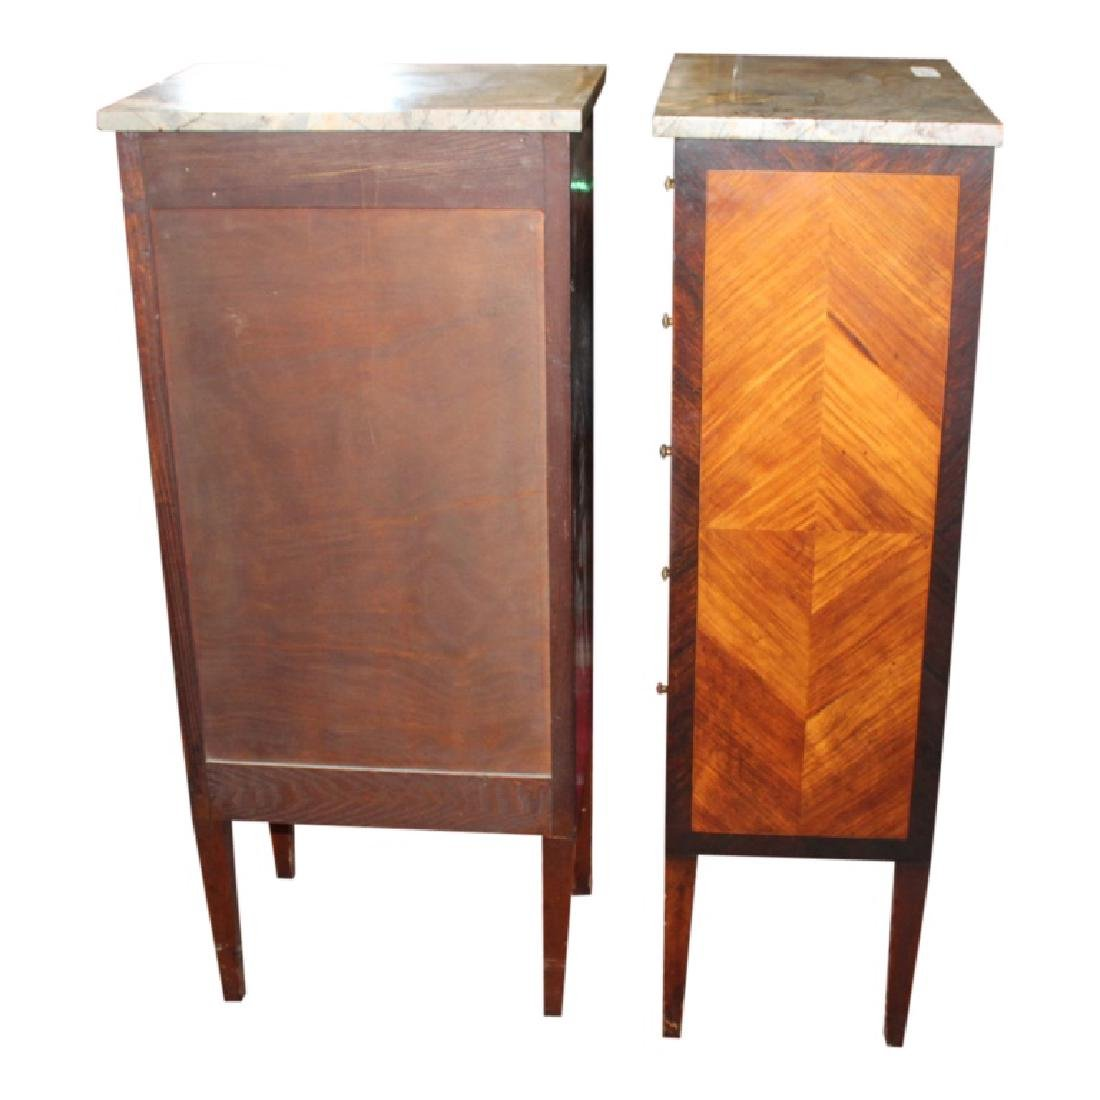 Pair of Marble Top Lingerie Chests - 3